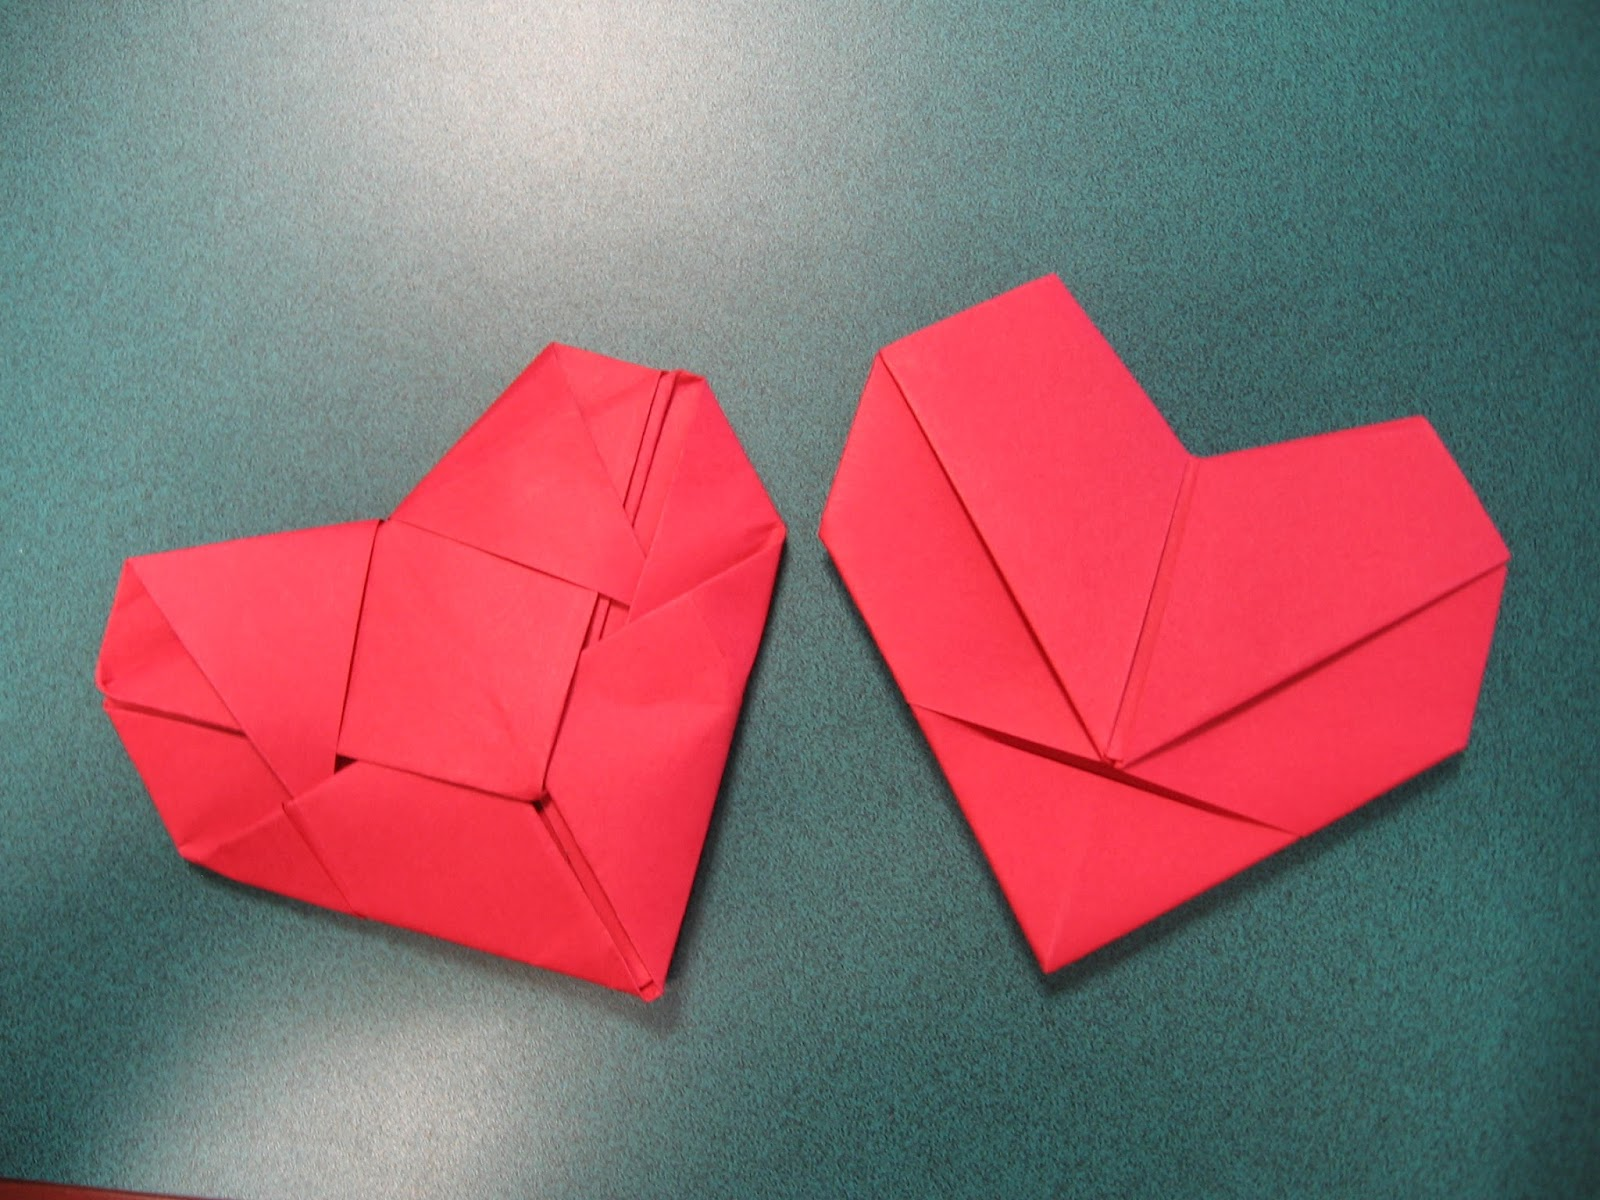 2 Magic Star Ring Variation First Attributed To Robert Neale Video At Leyla Torress Origami Spirit